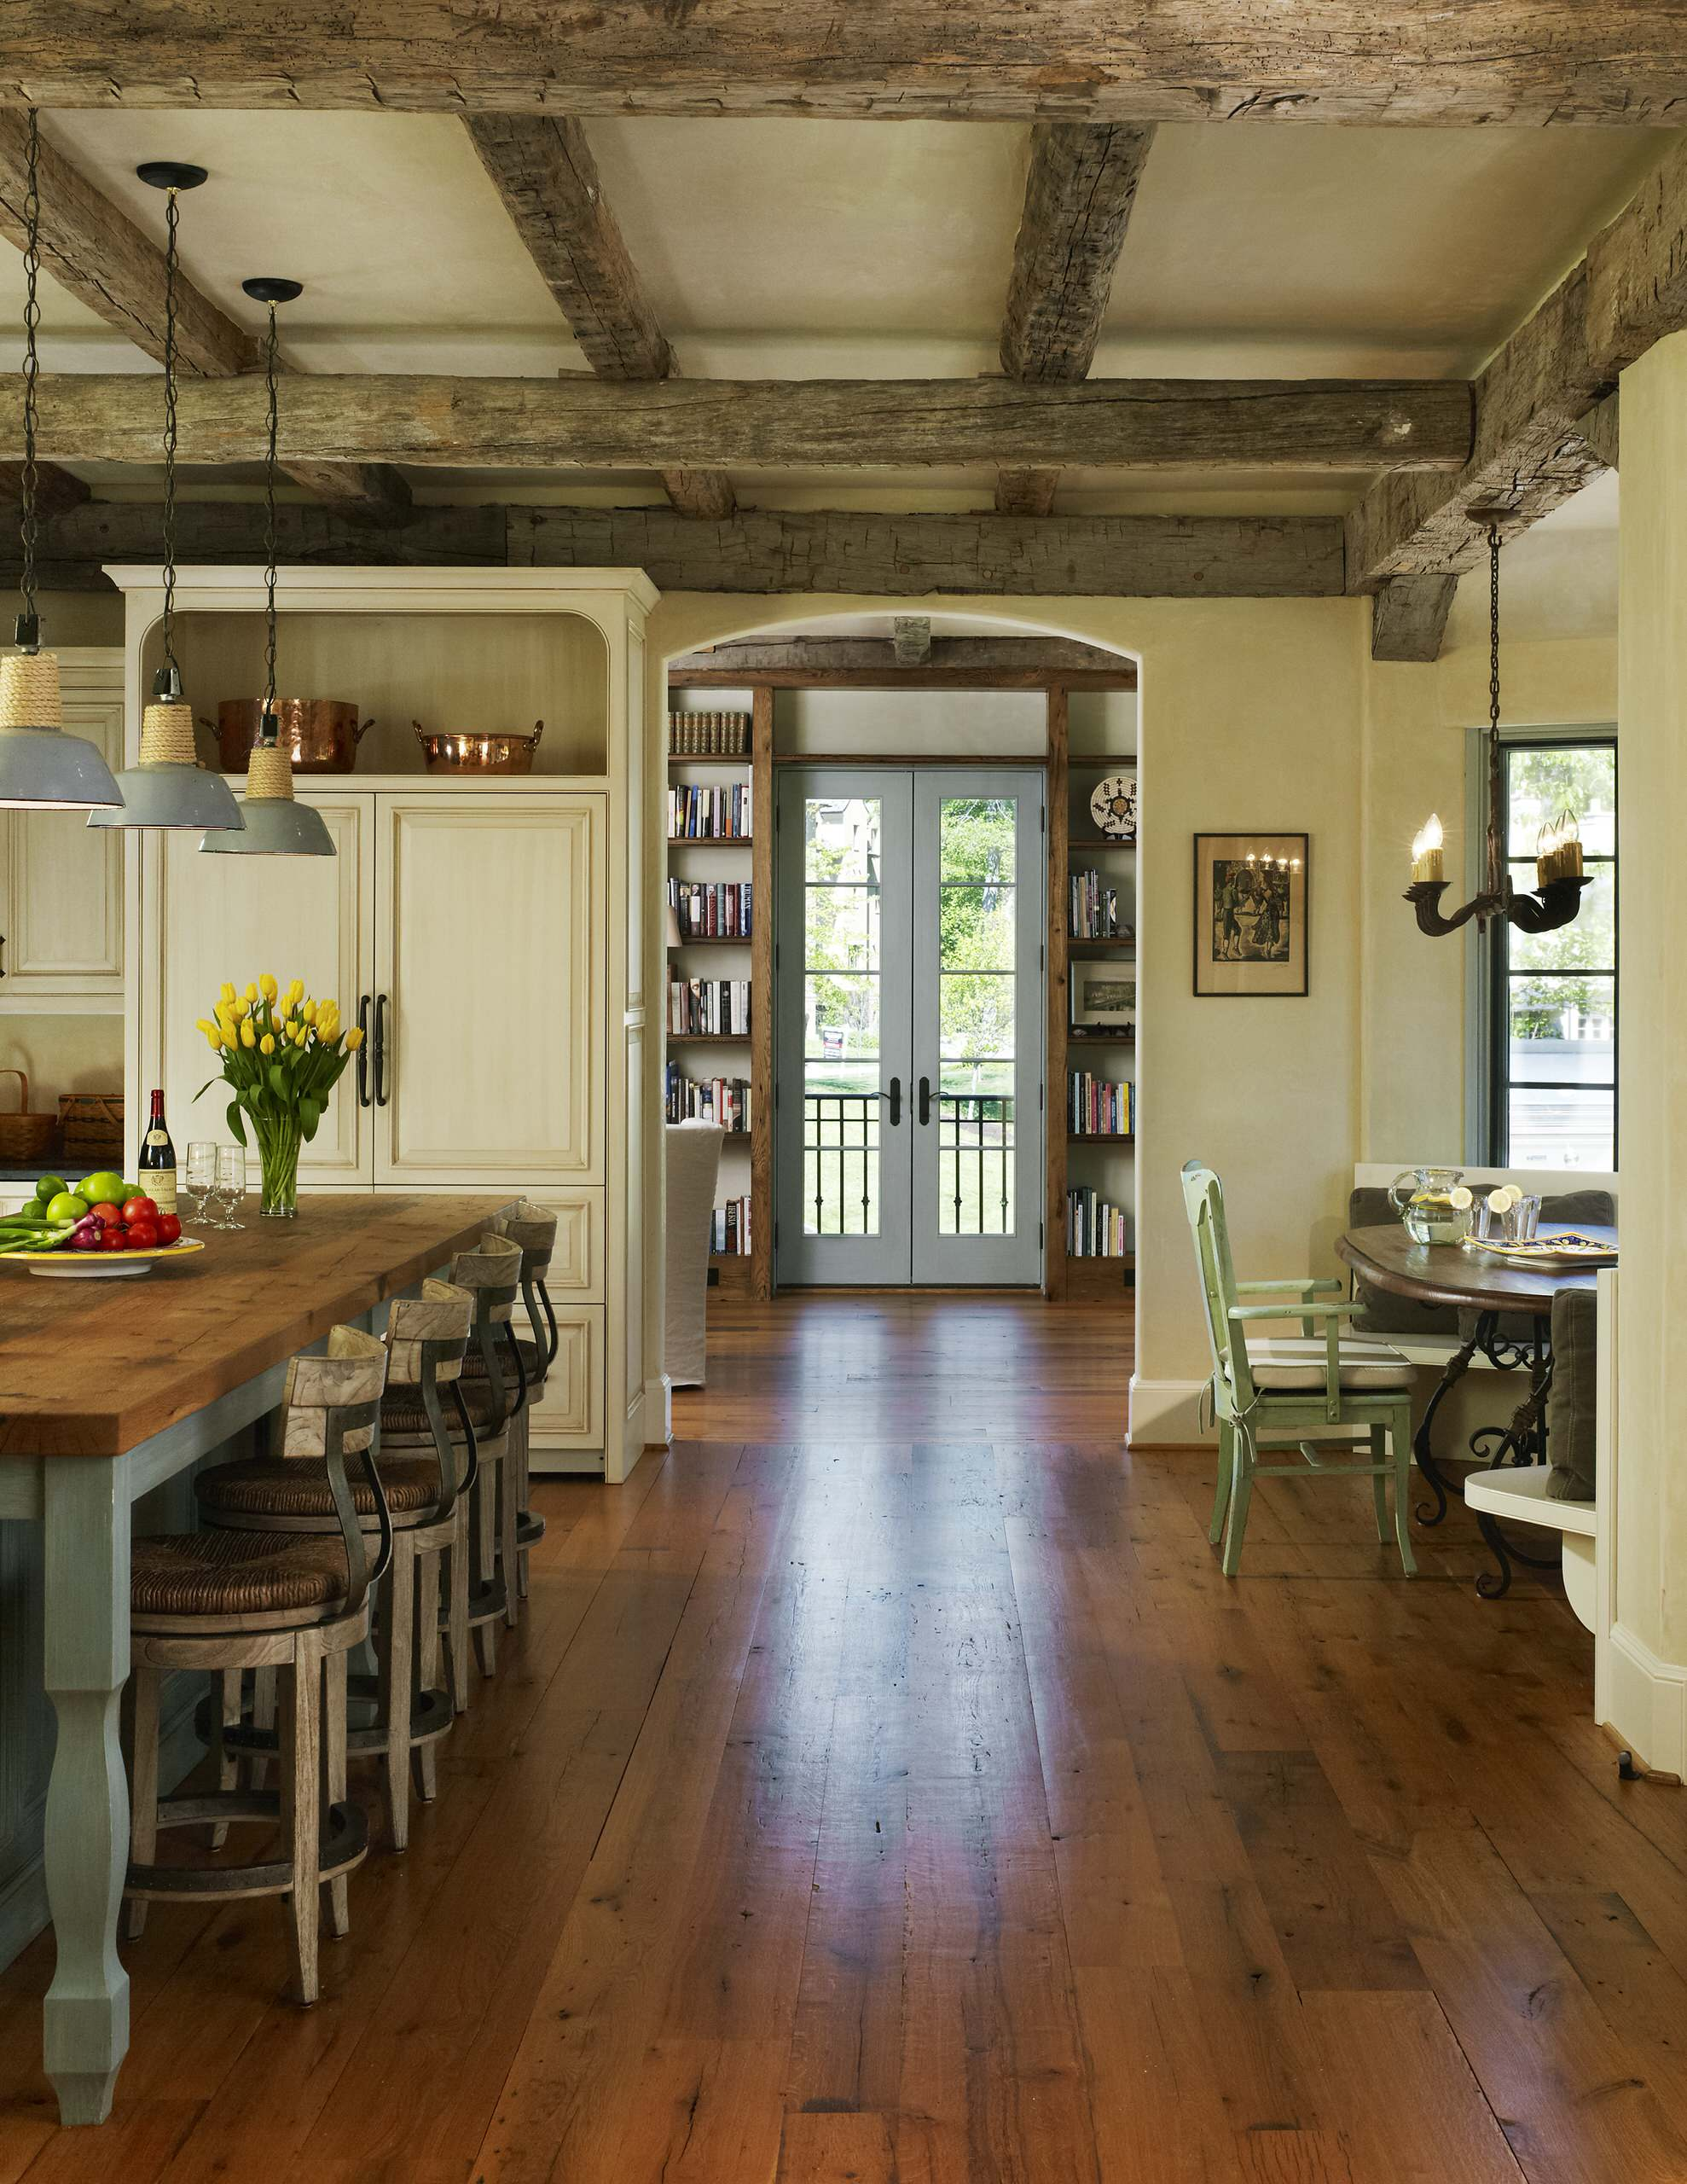 French Country Flooring : french, country, flooring, Beautiful, French, Country, Design, Houzz, Pictures, Ideas, March,